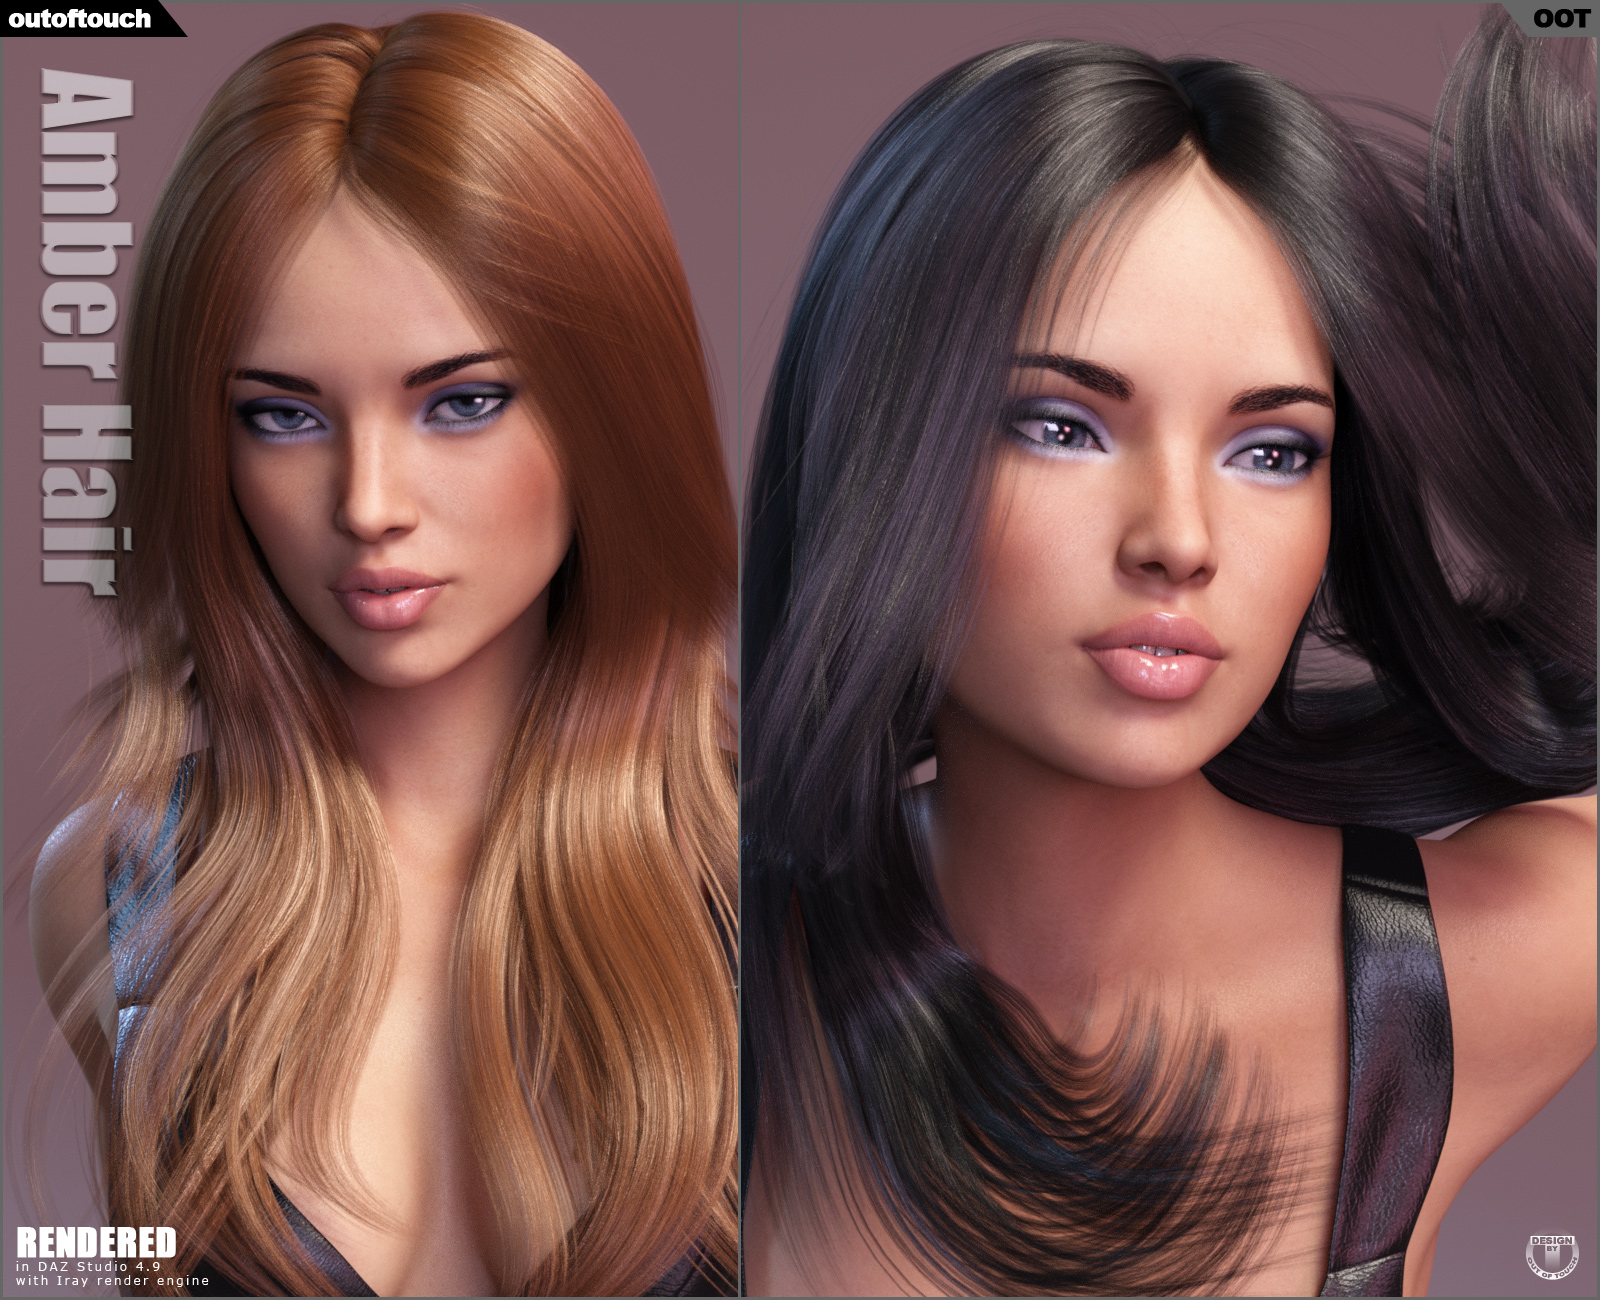 Amber Hair for Victoria 4, Genesis 2 Female(s) and Genesis 3 Female(s) by outoftouch